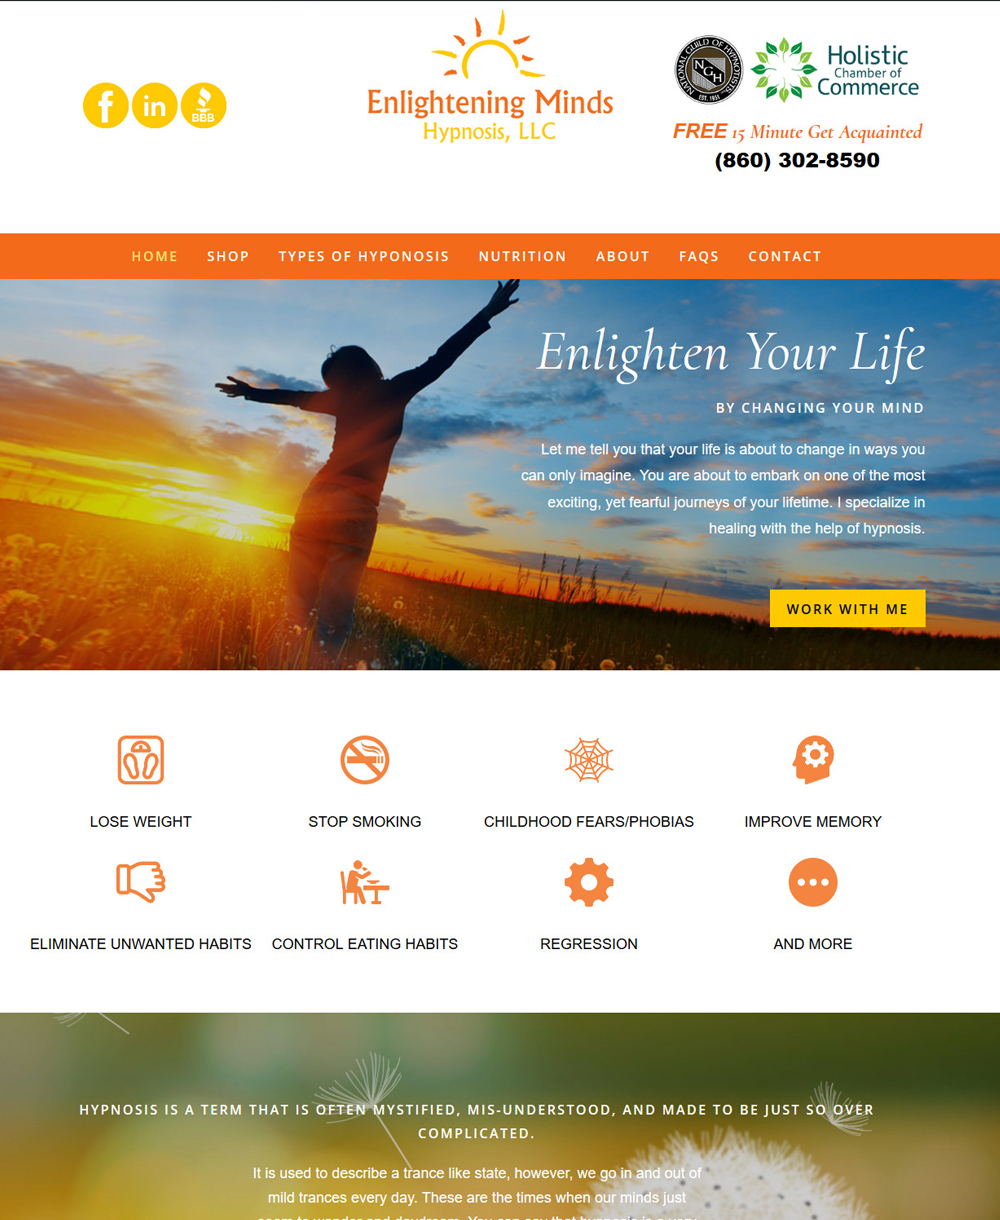 Enlightening-Minds-Hypnosis,-Llc---Holistic-Health-Counseling,-Hypnosis,-Hypnosis-For-Weight-Loss--